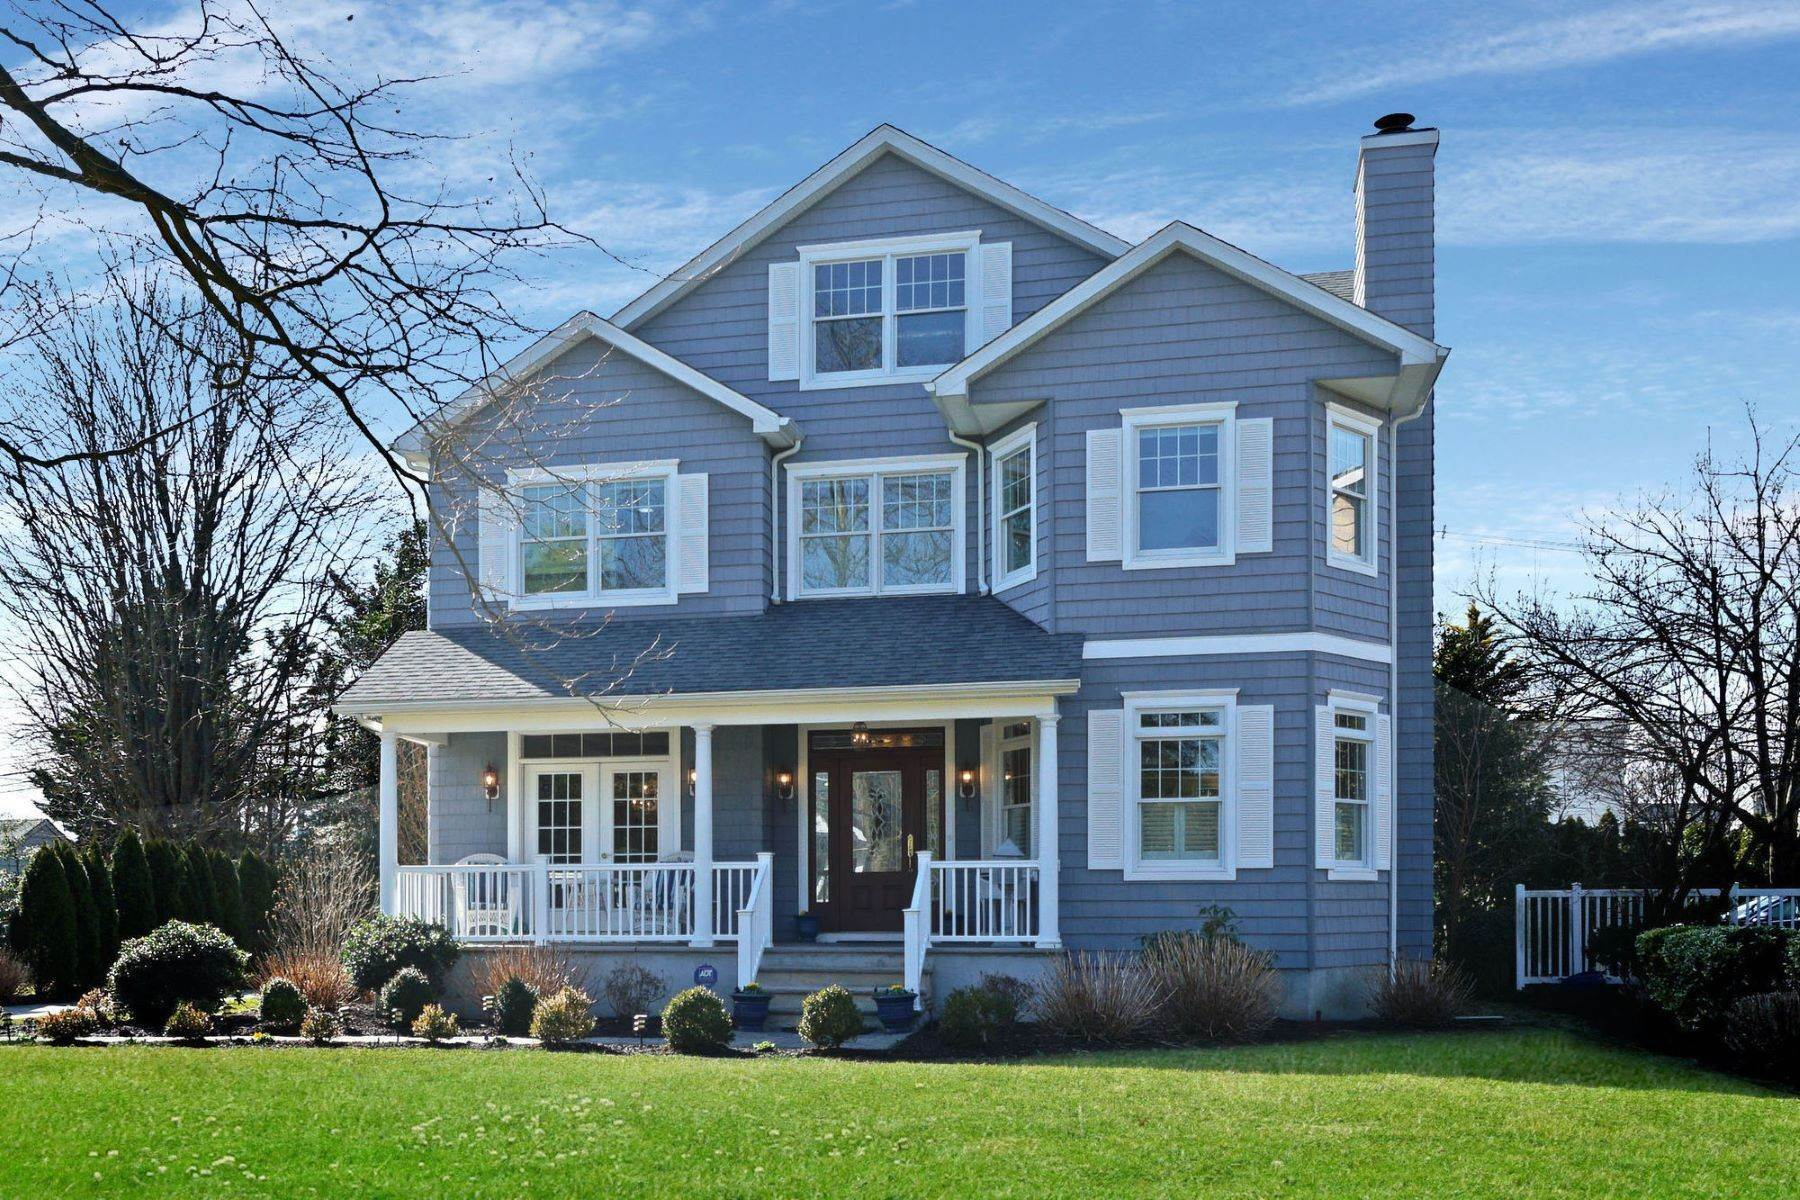 Single Family Homes for Sale at Classic Shore Colonial 510 Crescent Parkway Sea Girt, New Jersey 08750 United States